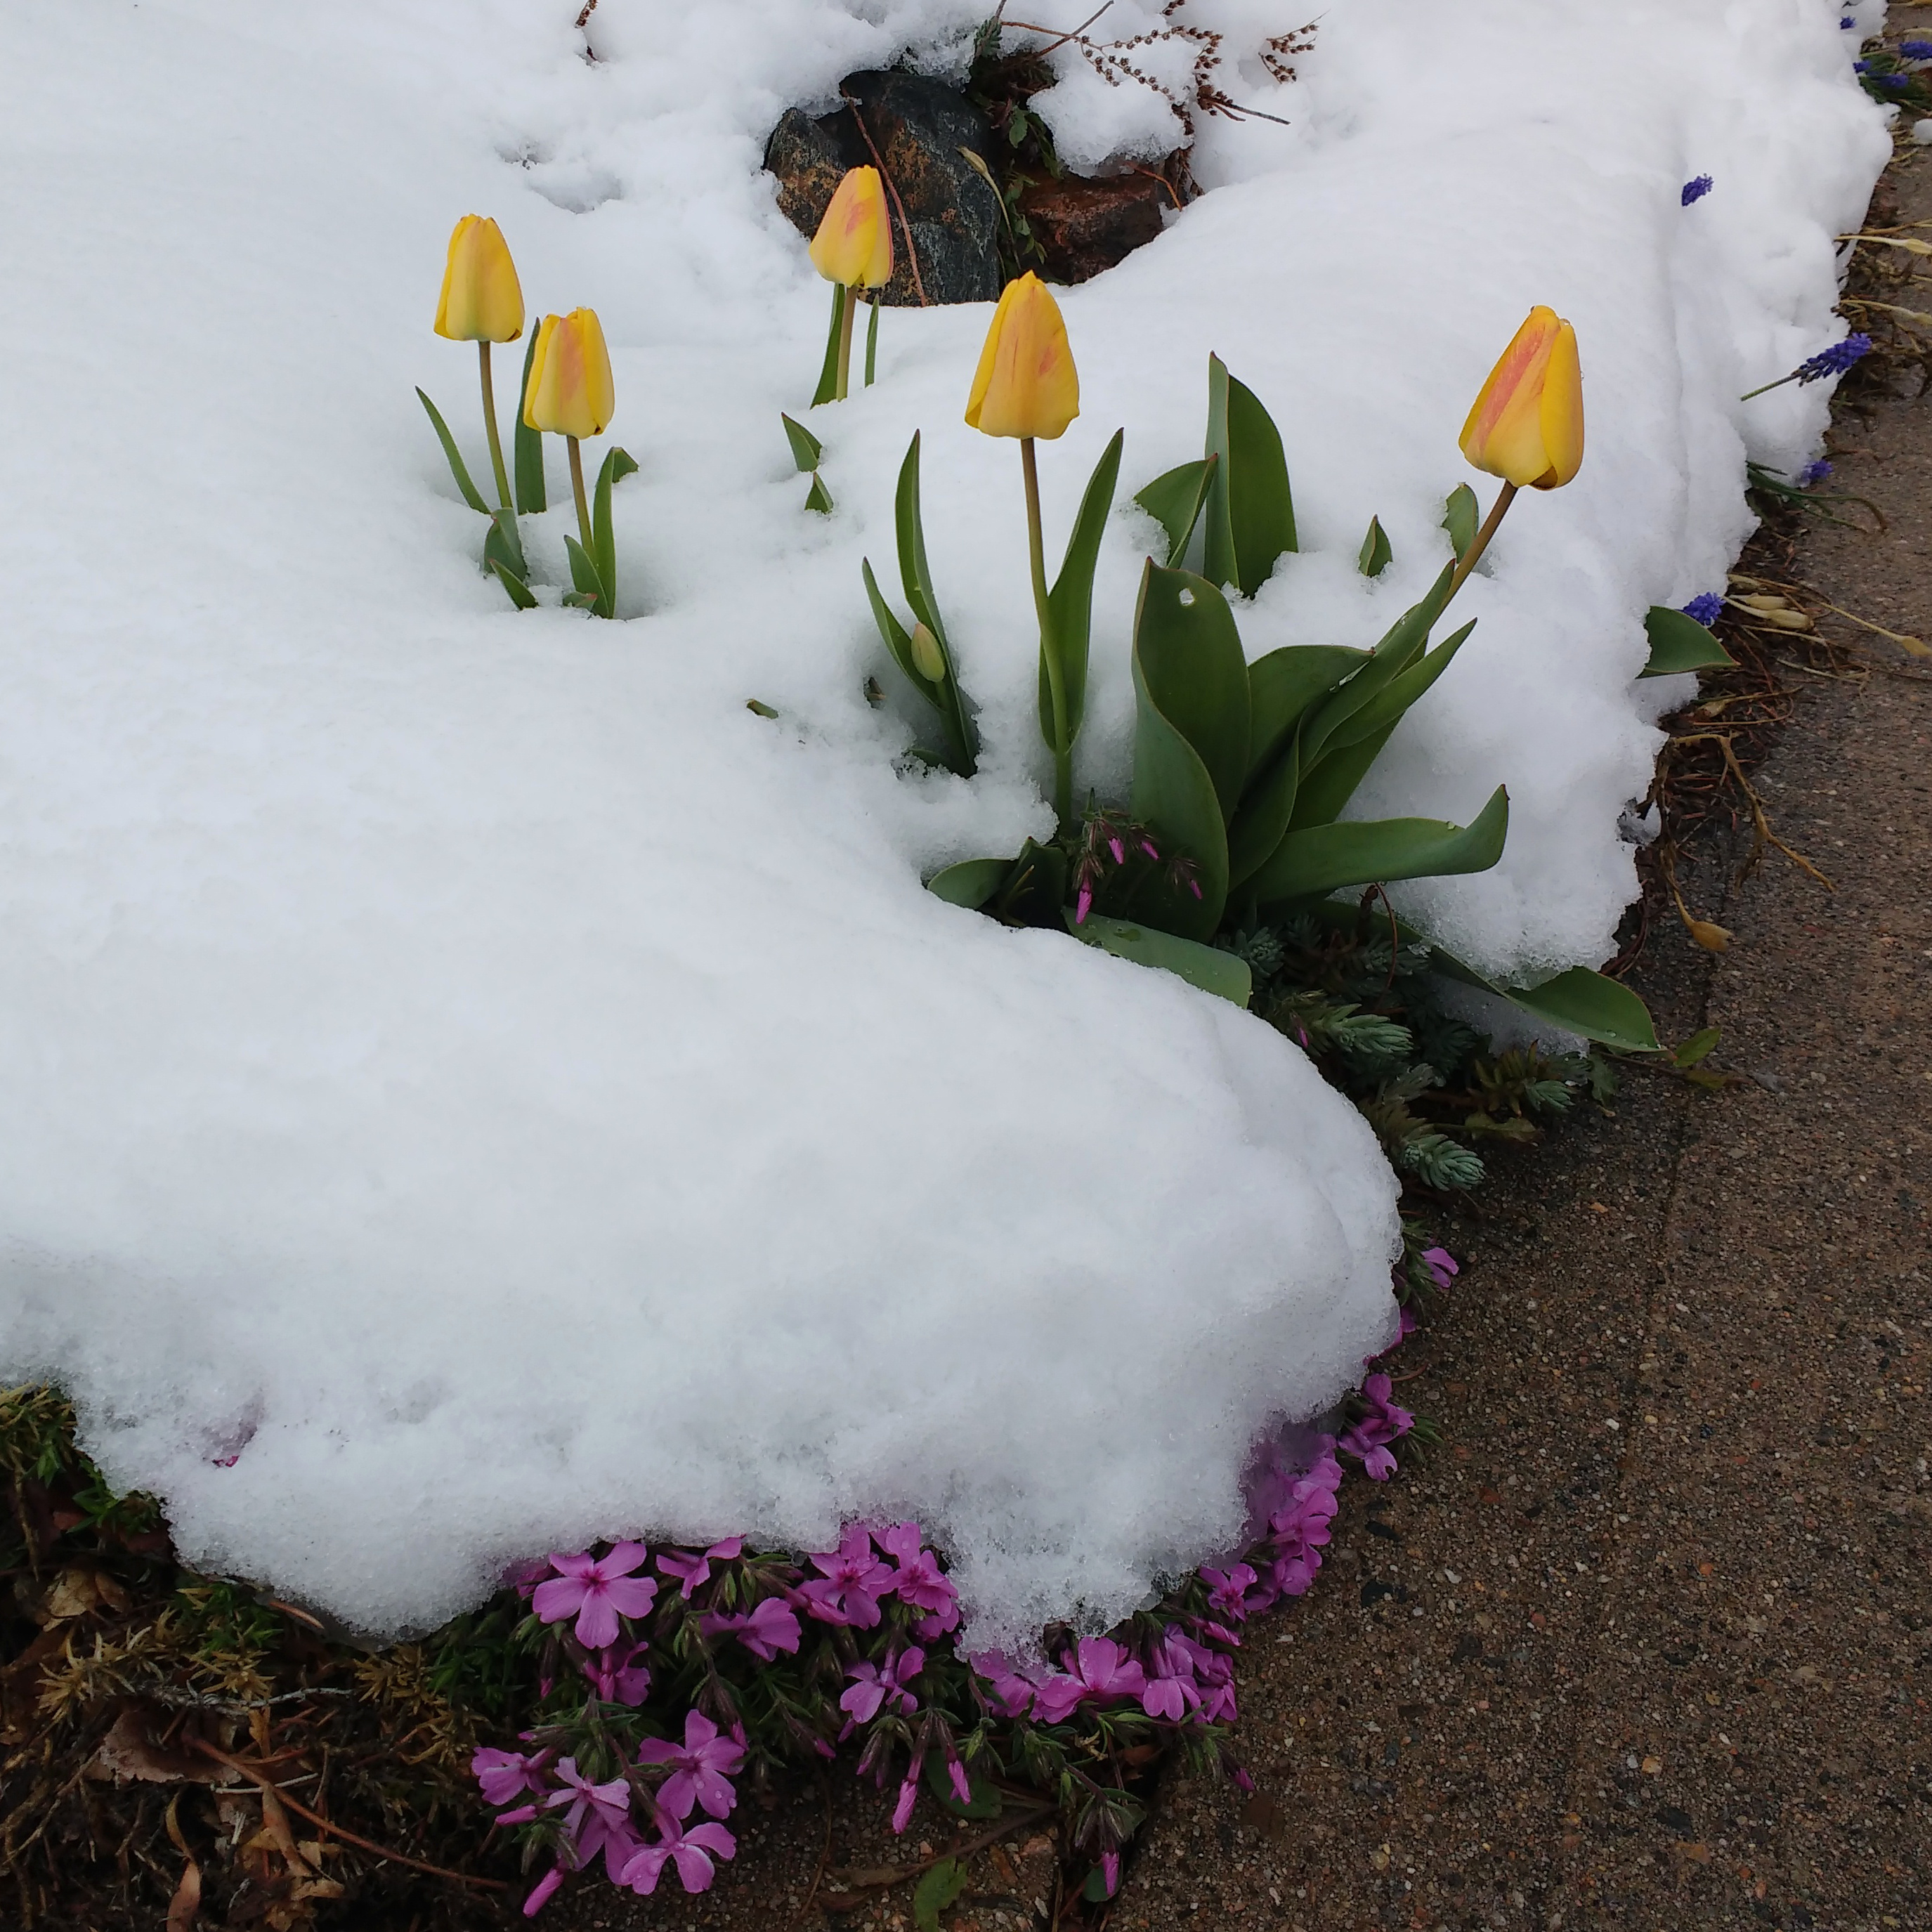 Spring Flowers Covered In Snow Picture Free Photograph Photos